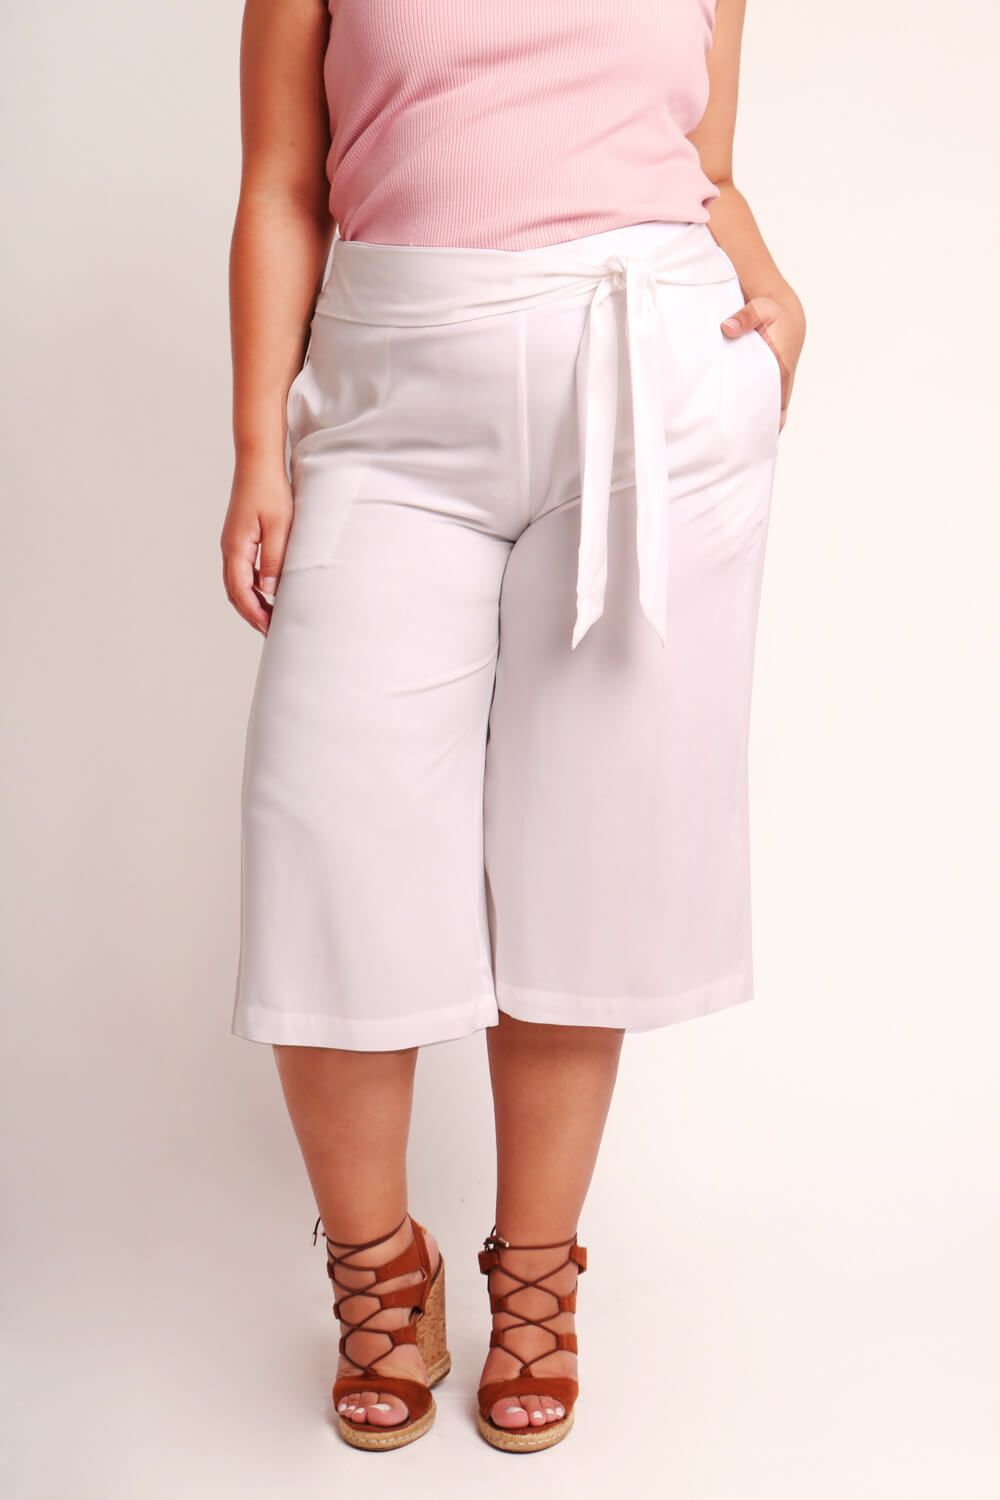 PANTACOURT PLUS SIZE LISA BRANCA